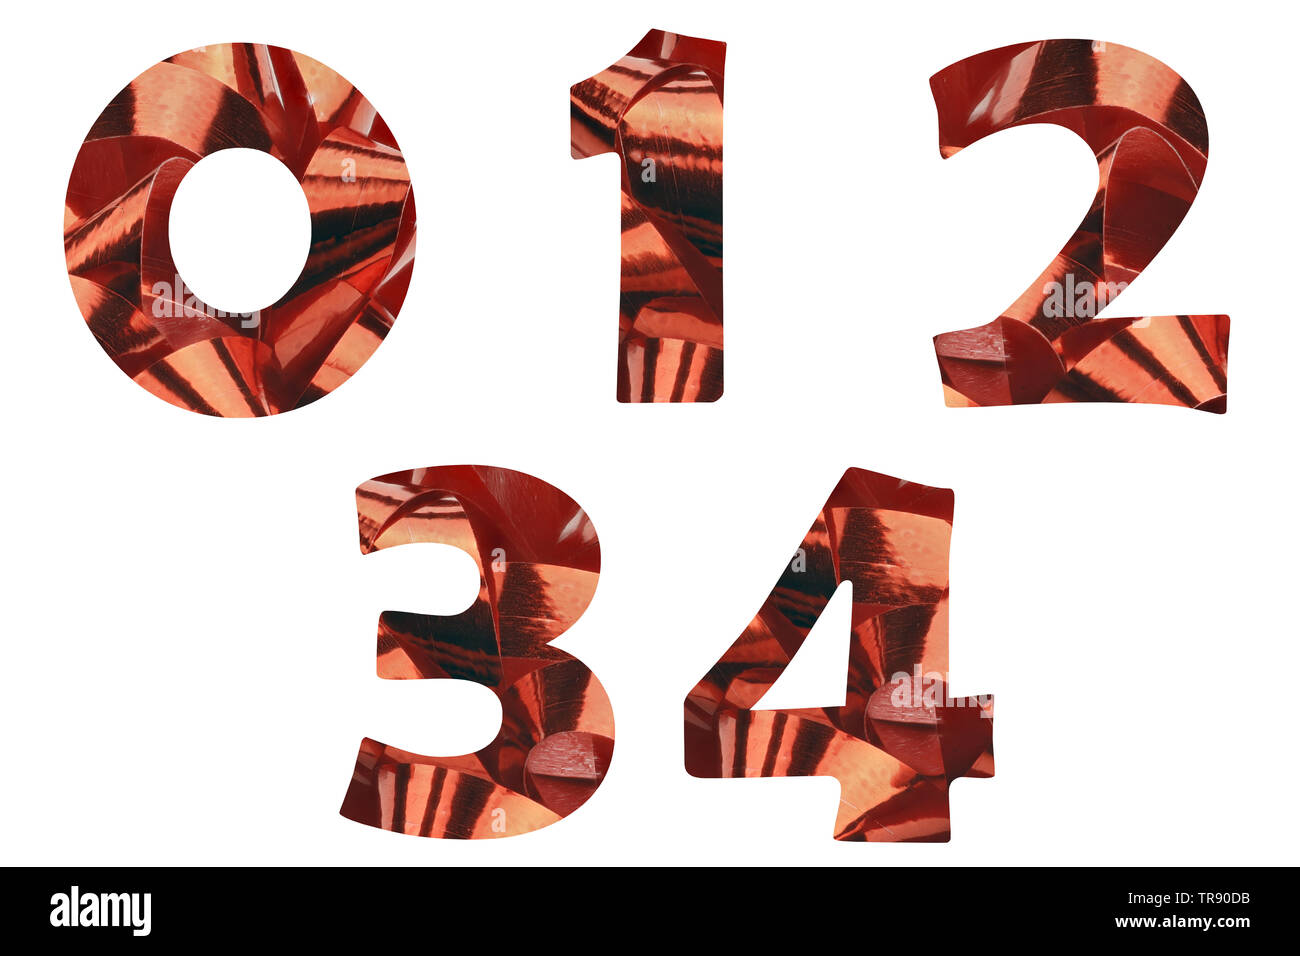 A set of the numbers 0,1,2,3 and 4 cut out of a close-up of a red gift ribbon - Stock Image